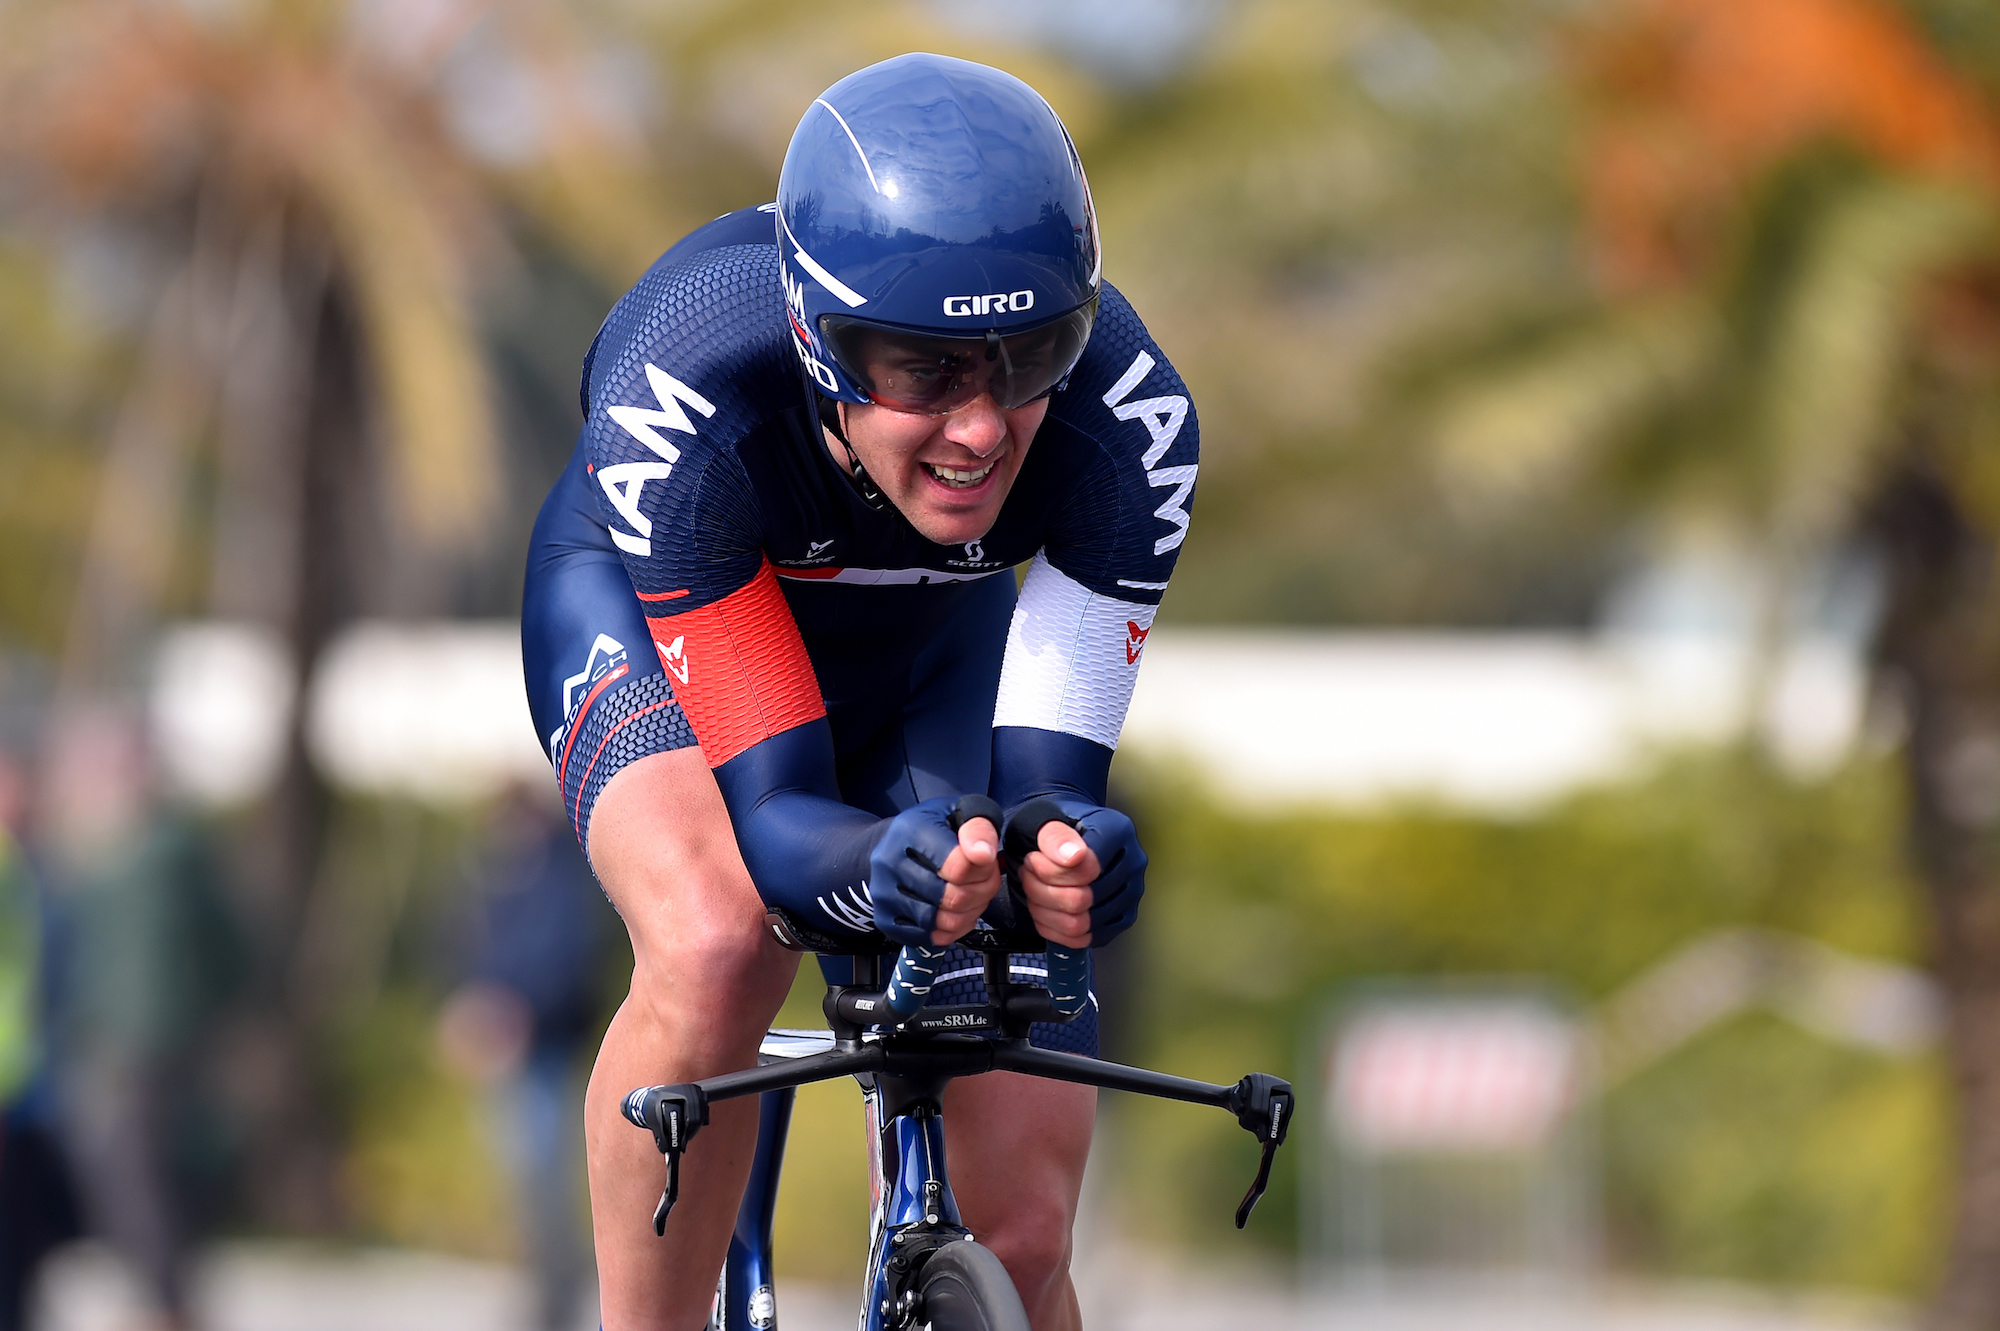 Former IAM Cycling rider confesses to doping within Aderlass network during career - Cycling Weekly